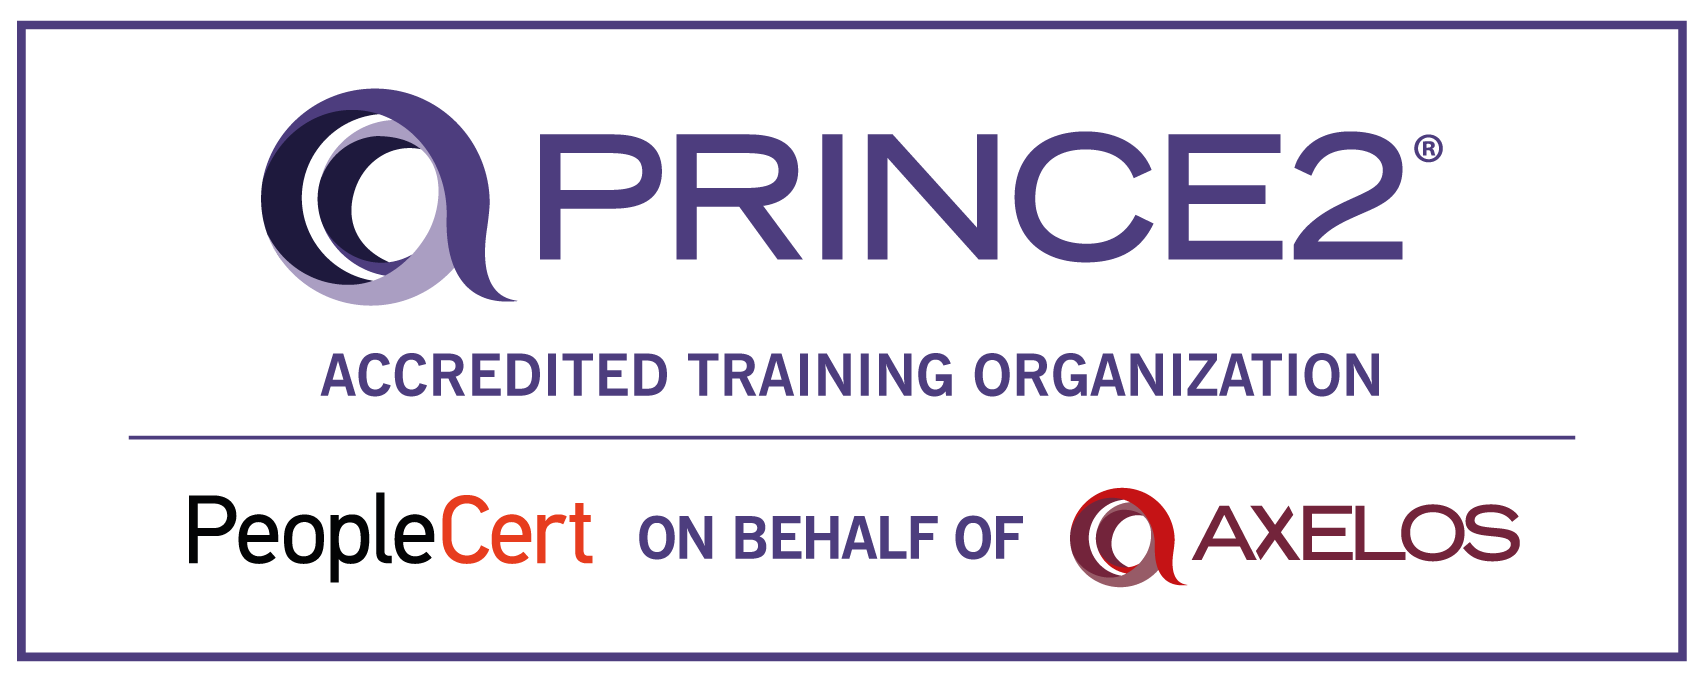 PRINCE2_ATO logo (004) aug 18 cropped